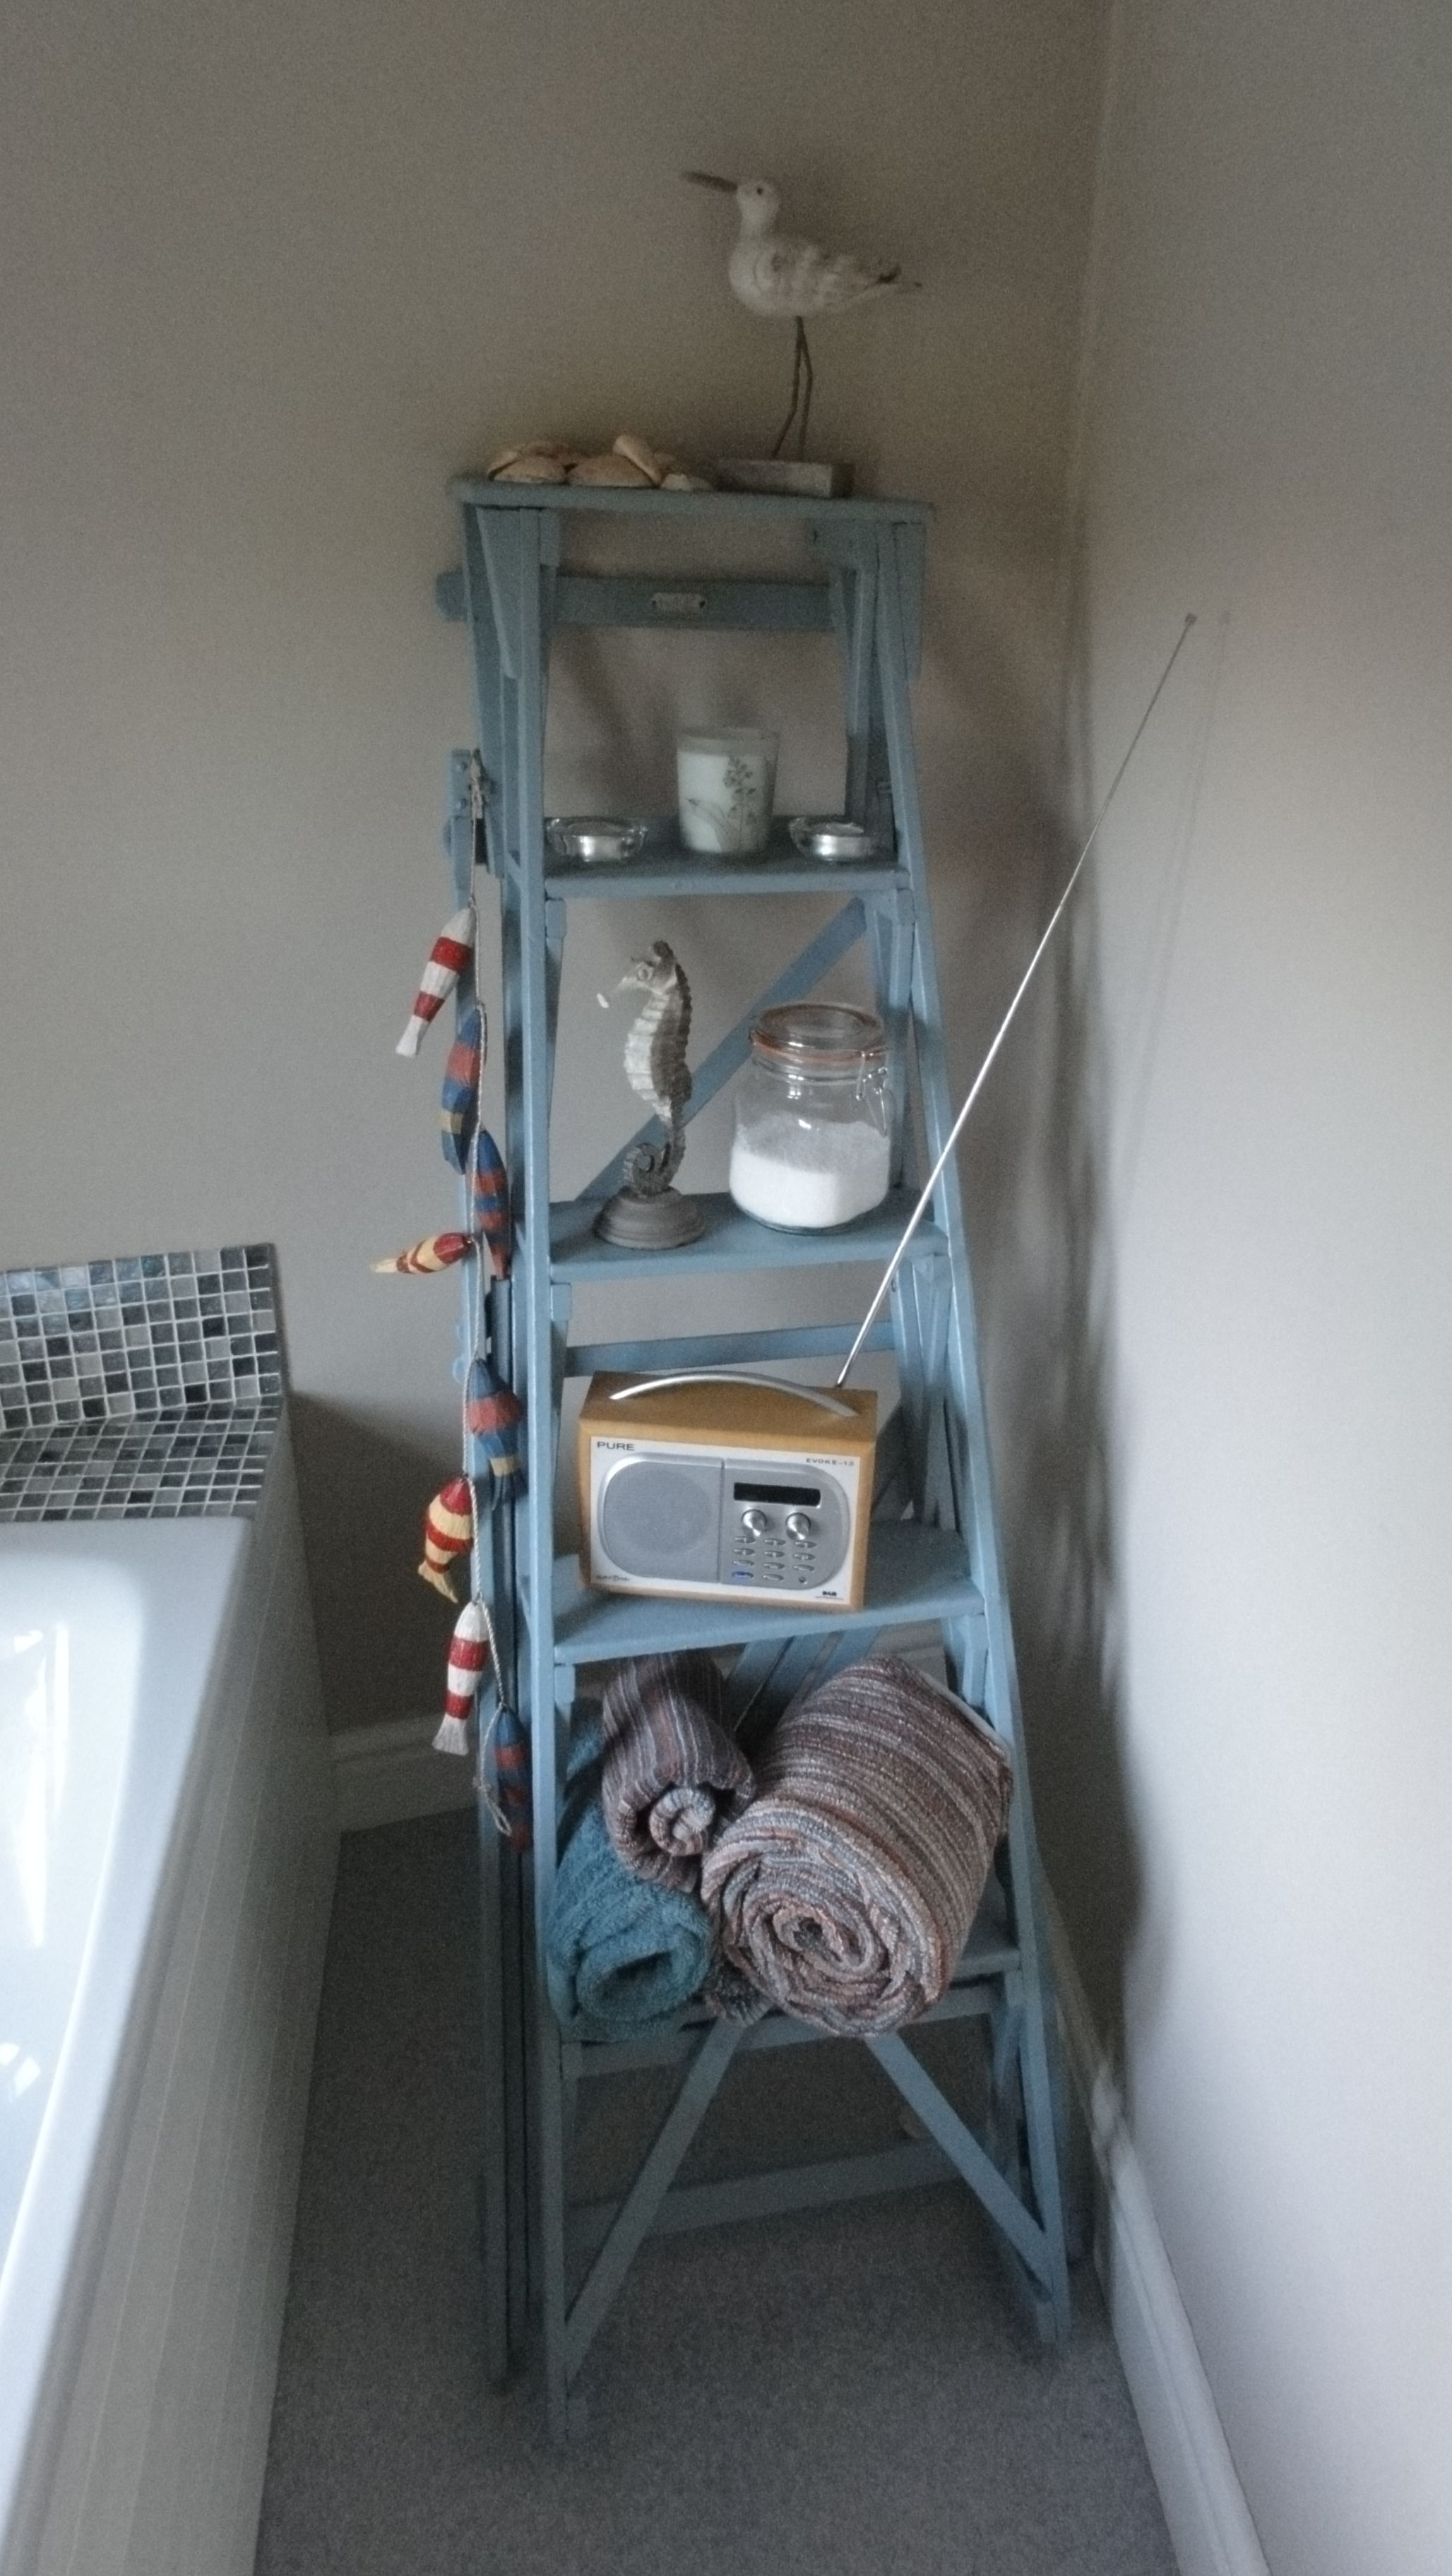 The finished item, now a bathroom feature